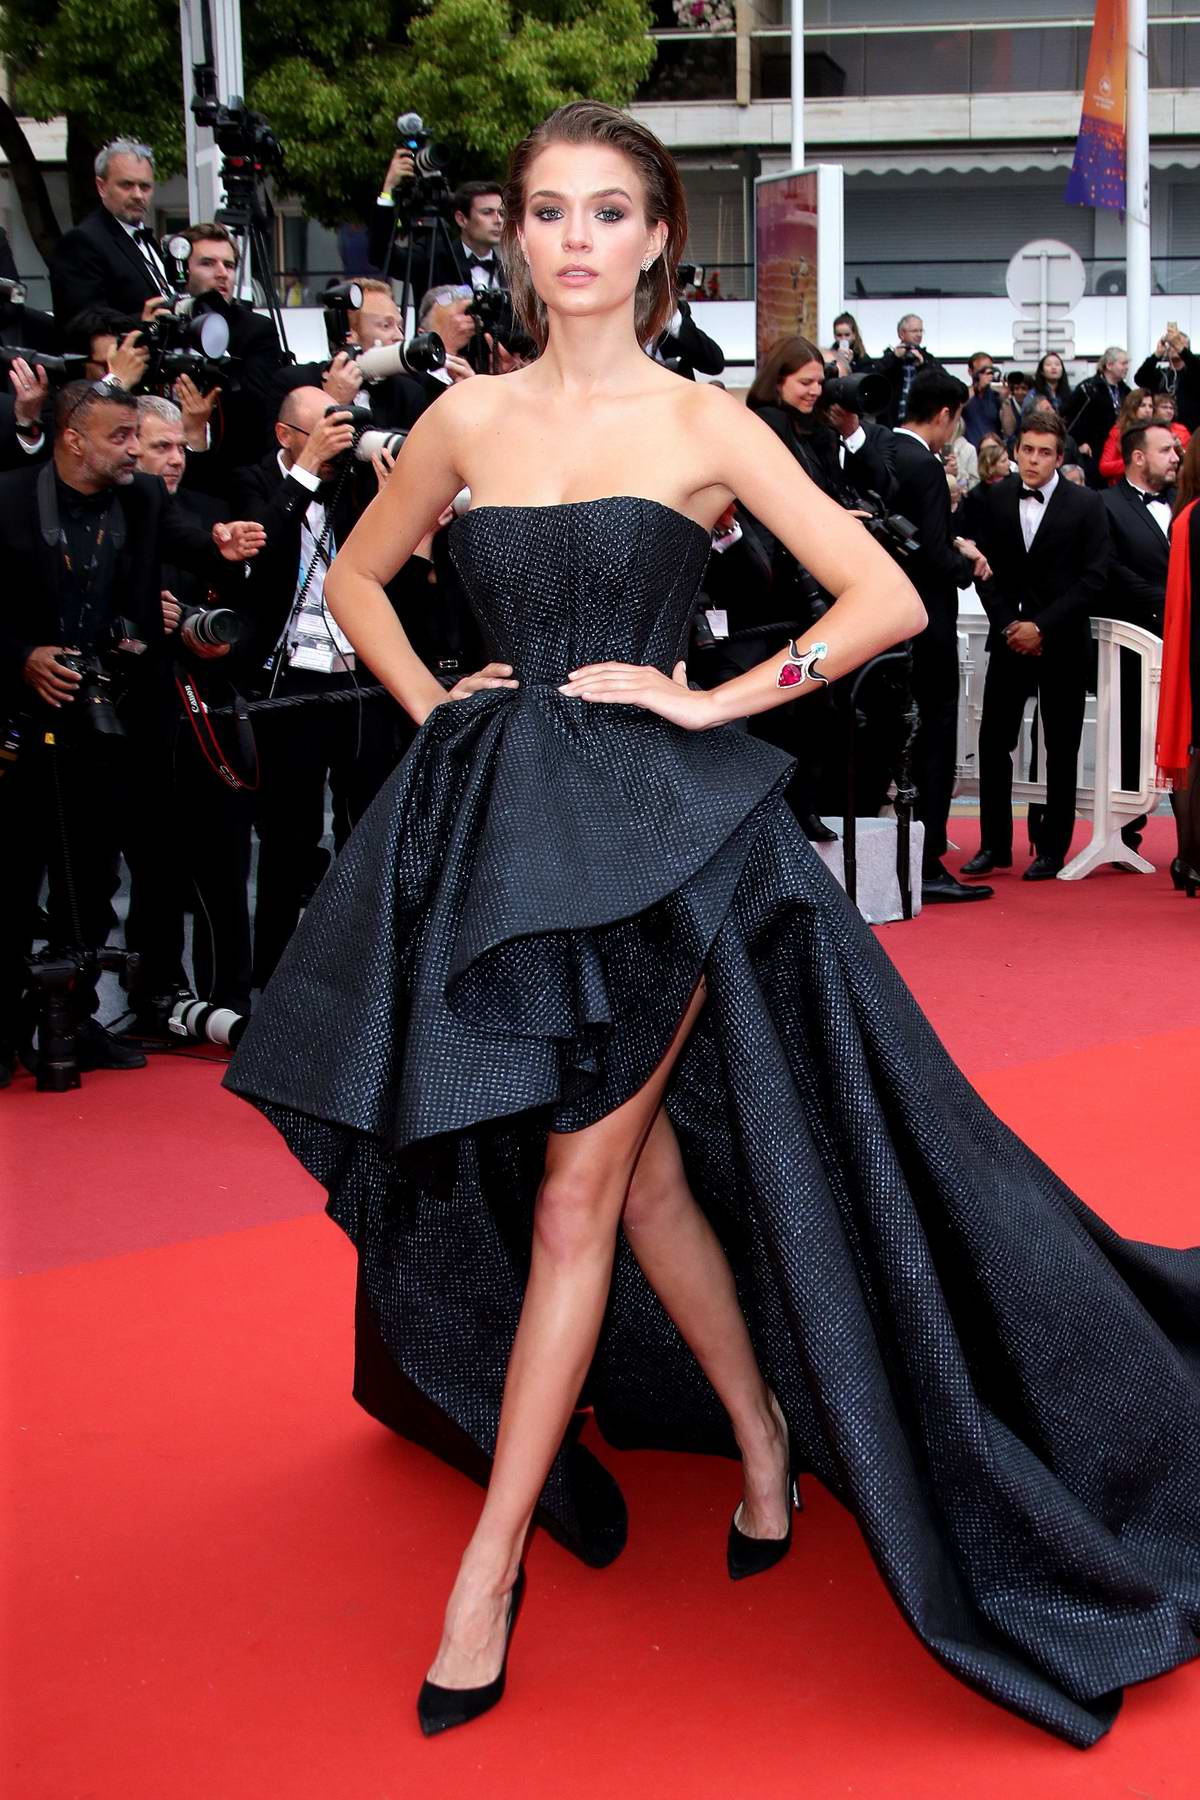 Josephine Skriver attends the screening of 'A Hidden Life' during the 72nd annual Cannes Film Festival in Cannes, France